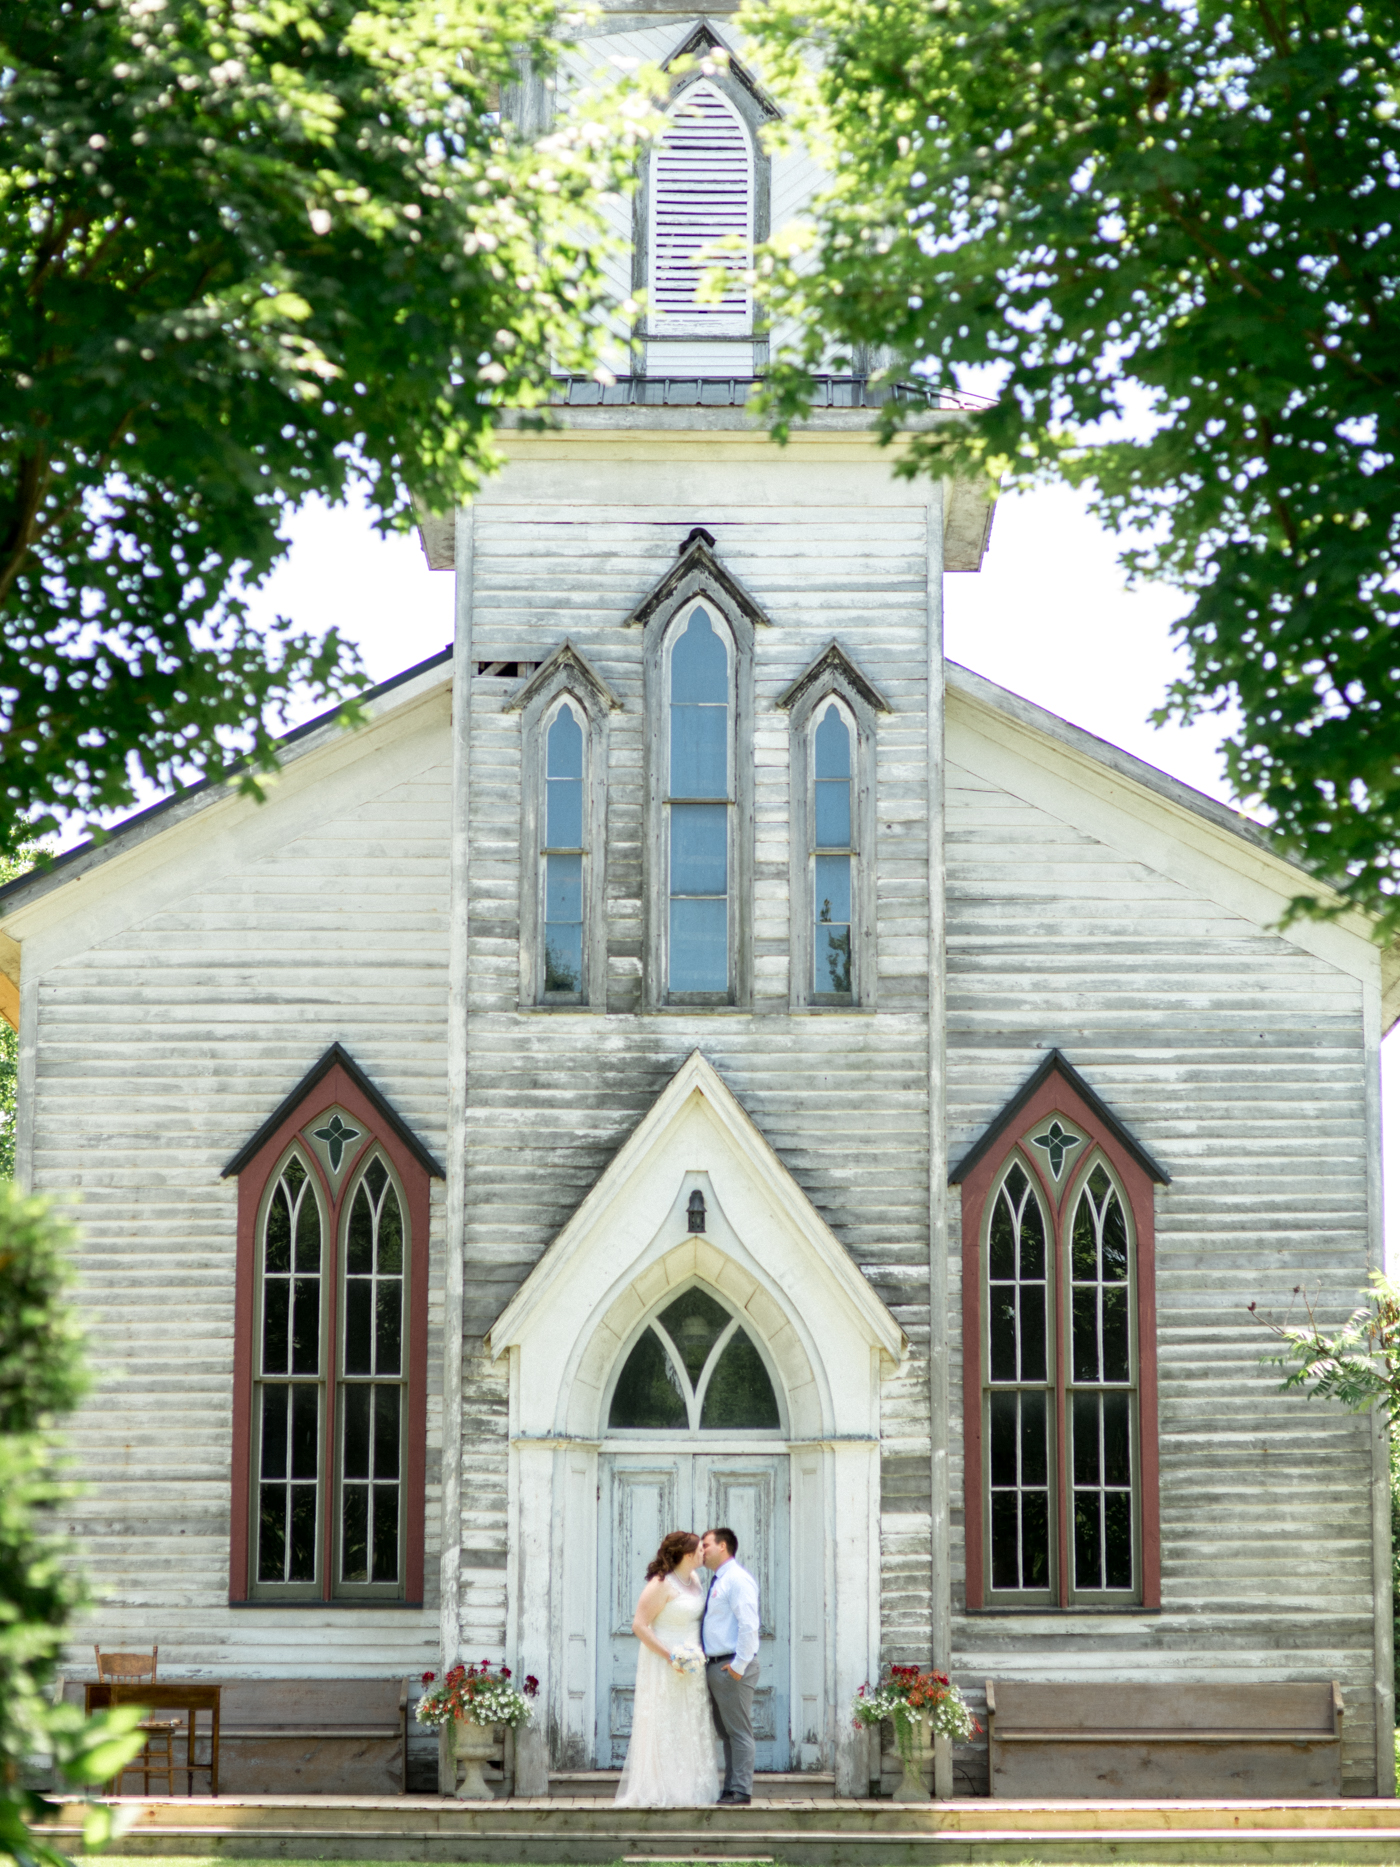 Chris & Carrie's Cranberry Creek Simcoe Port Dover Wedding Church Outdoor Summer Bright Hamilton Wedding Photography Niagara Aidan Hennebry Hush Hush Photography & Film-10.jpg